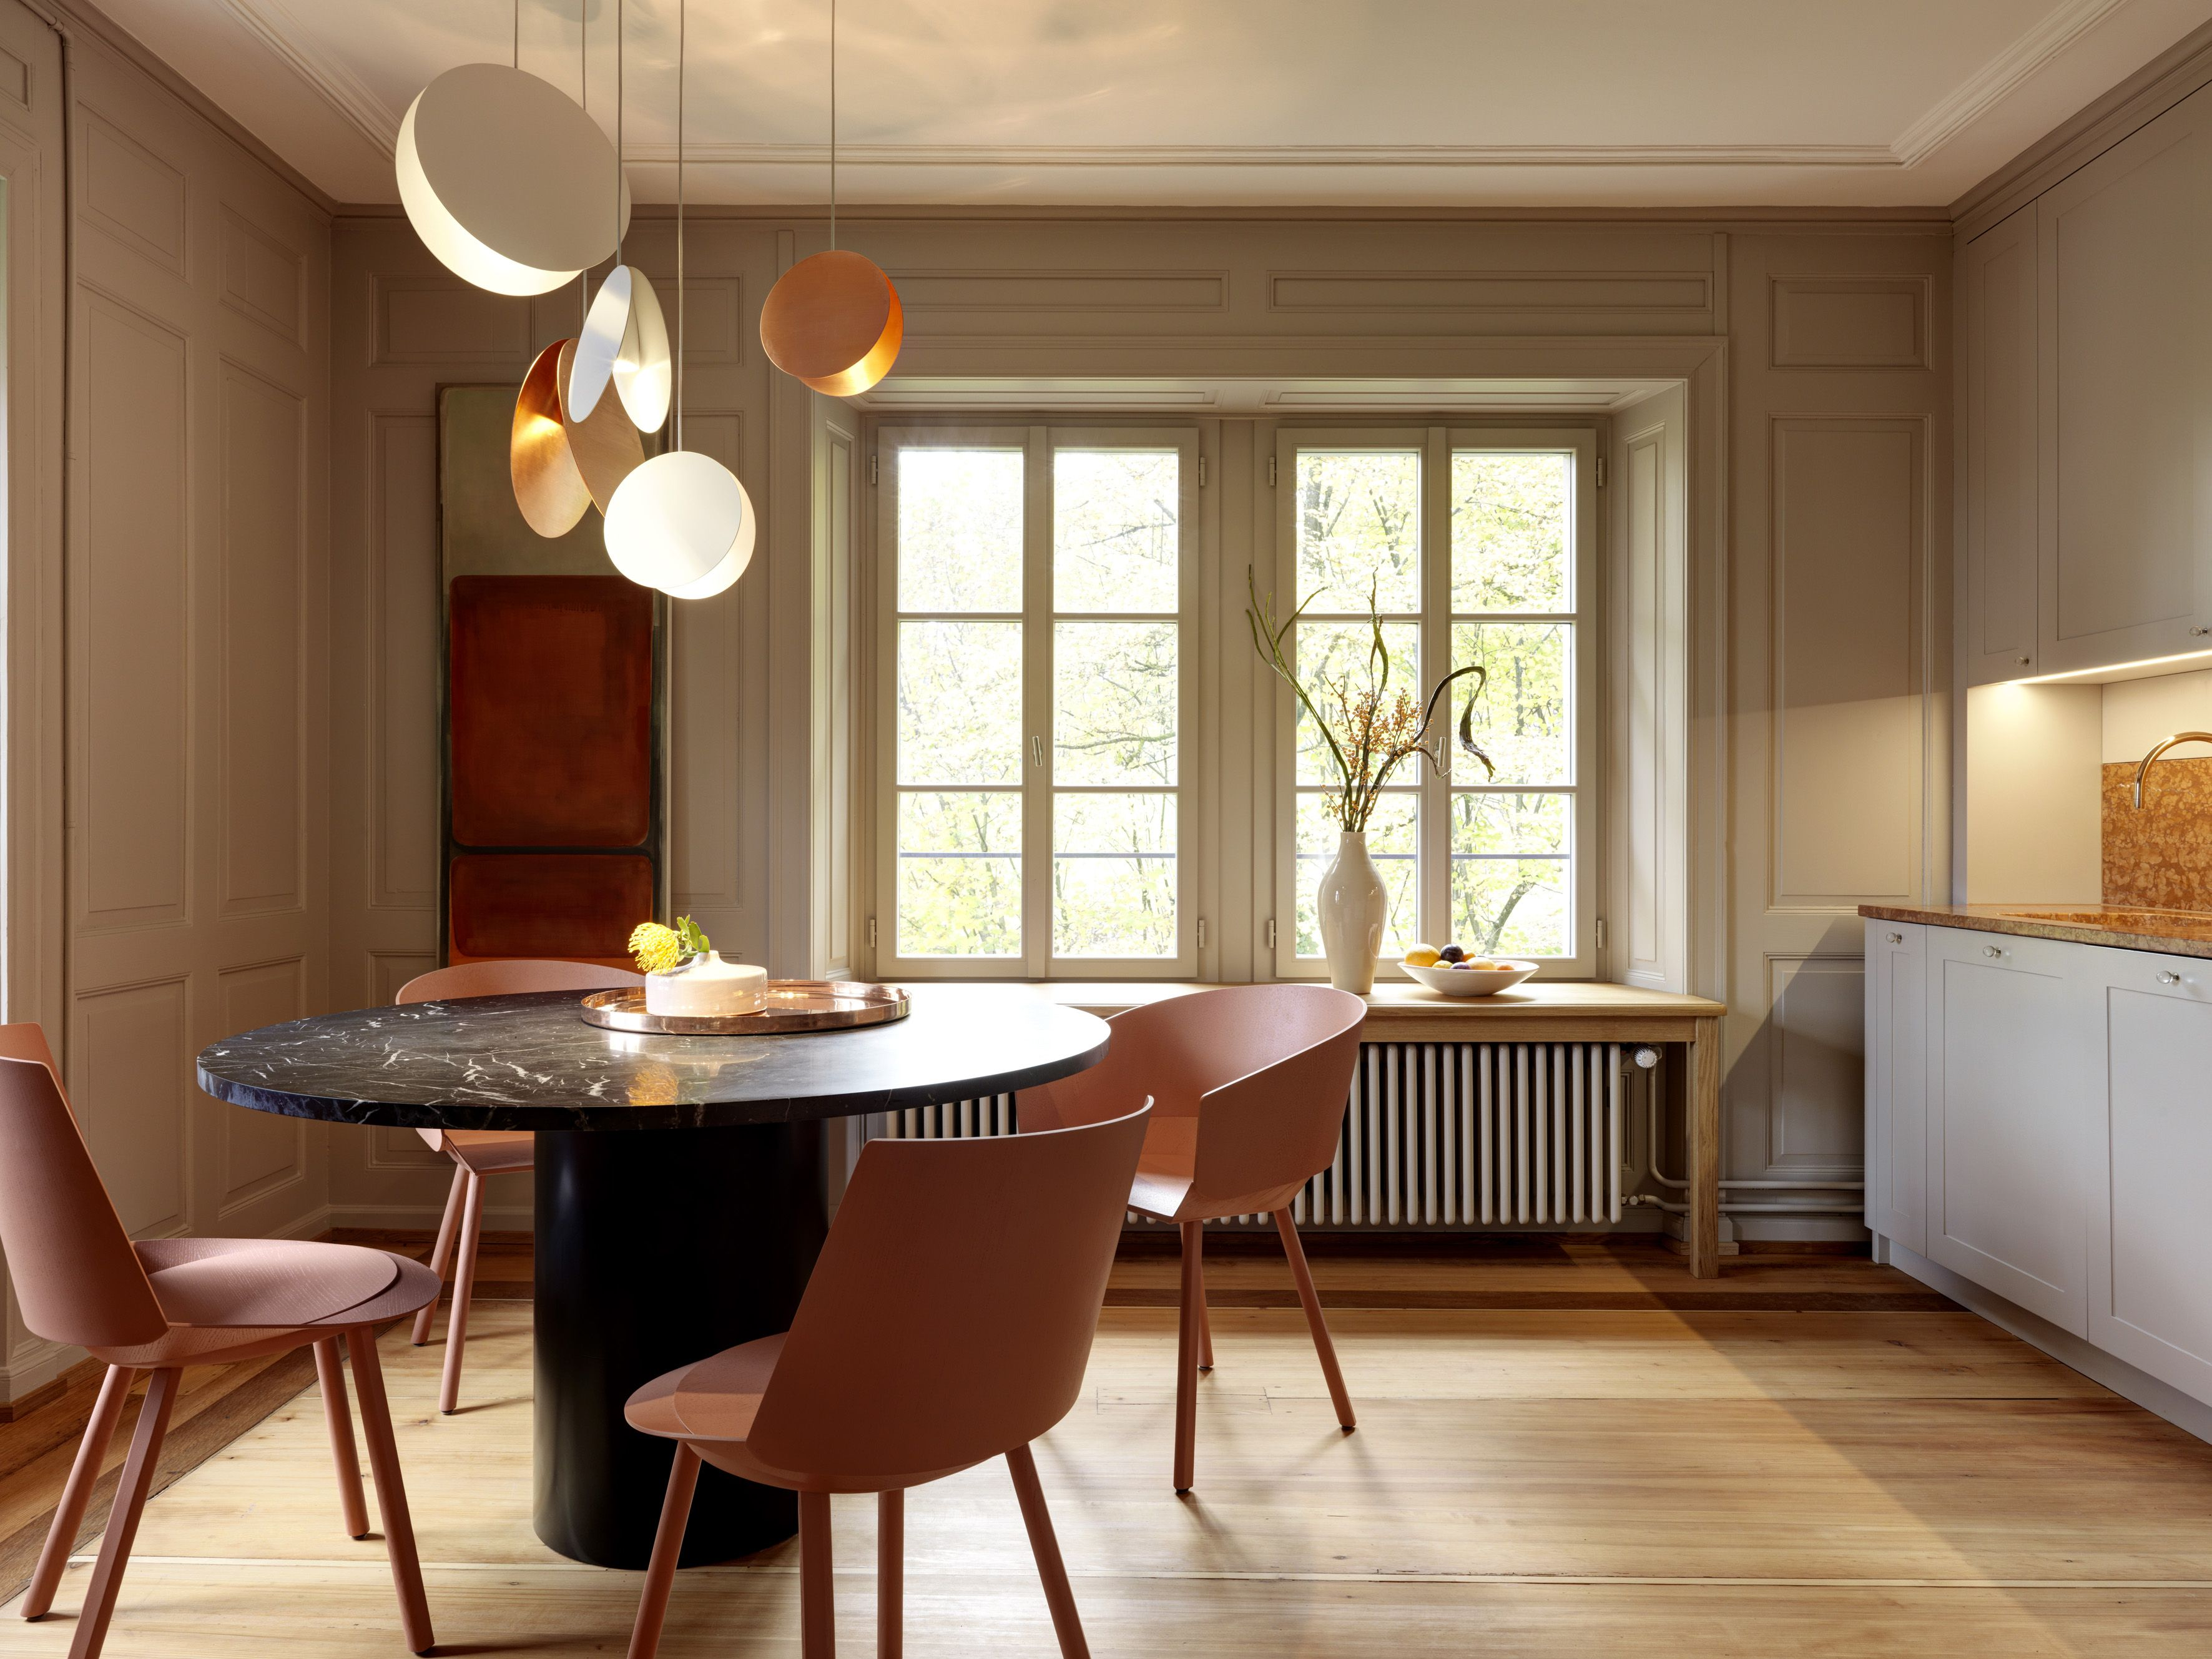 E15 Chair Houdini Table Hiroki And Pendant Light North In A